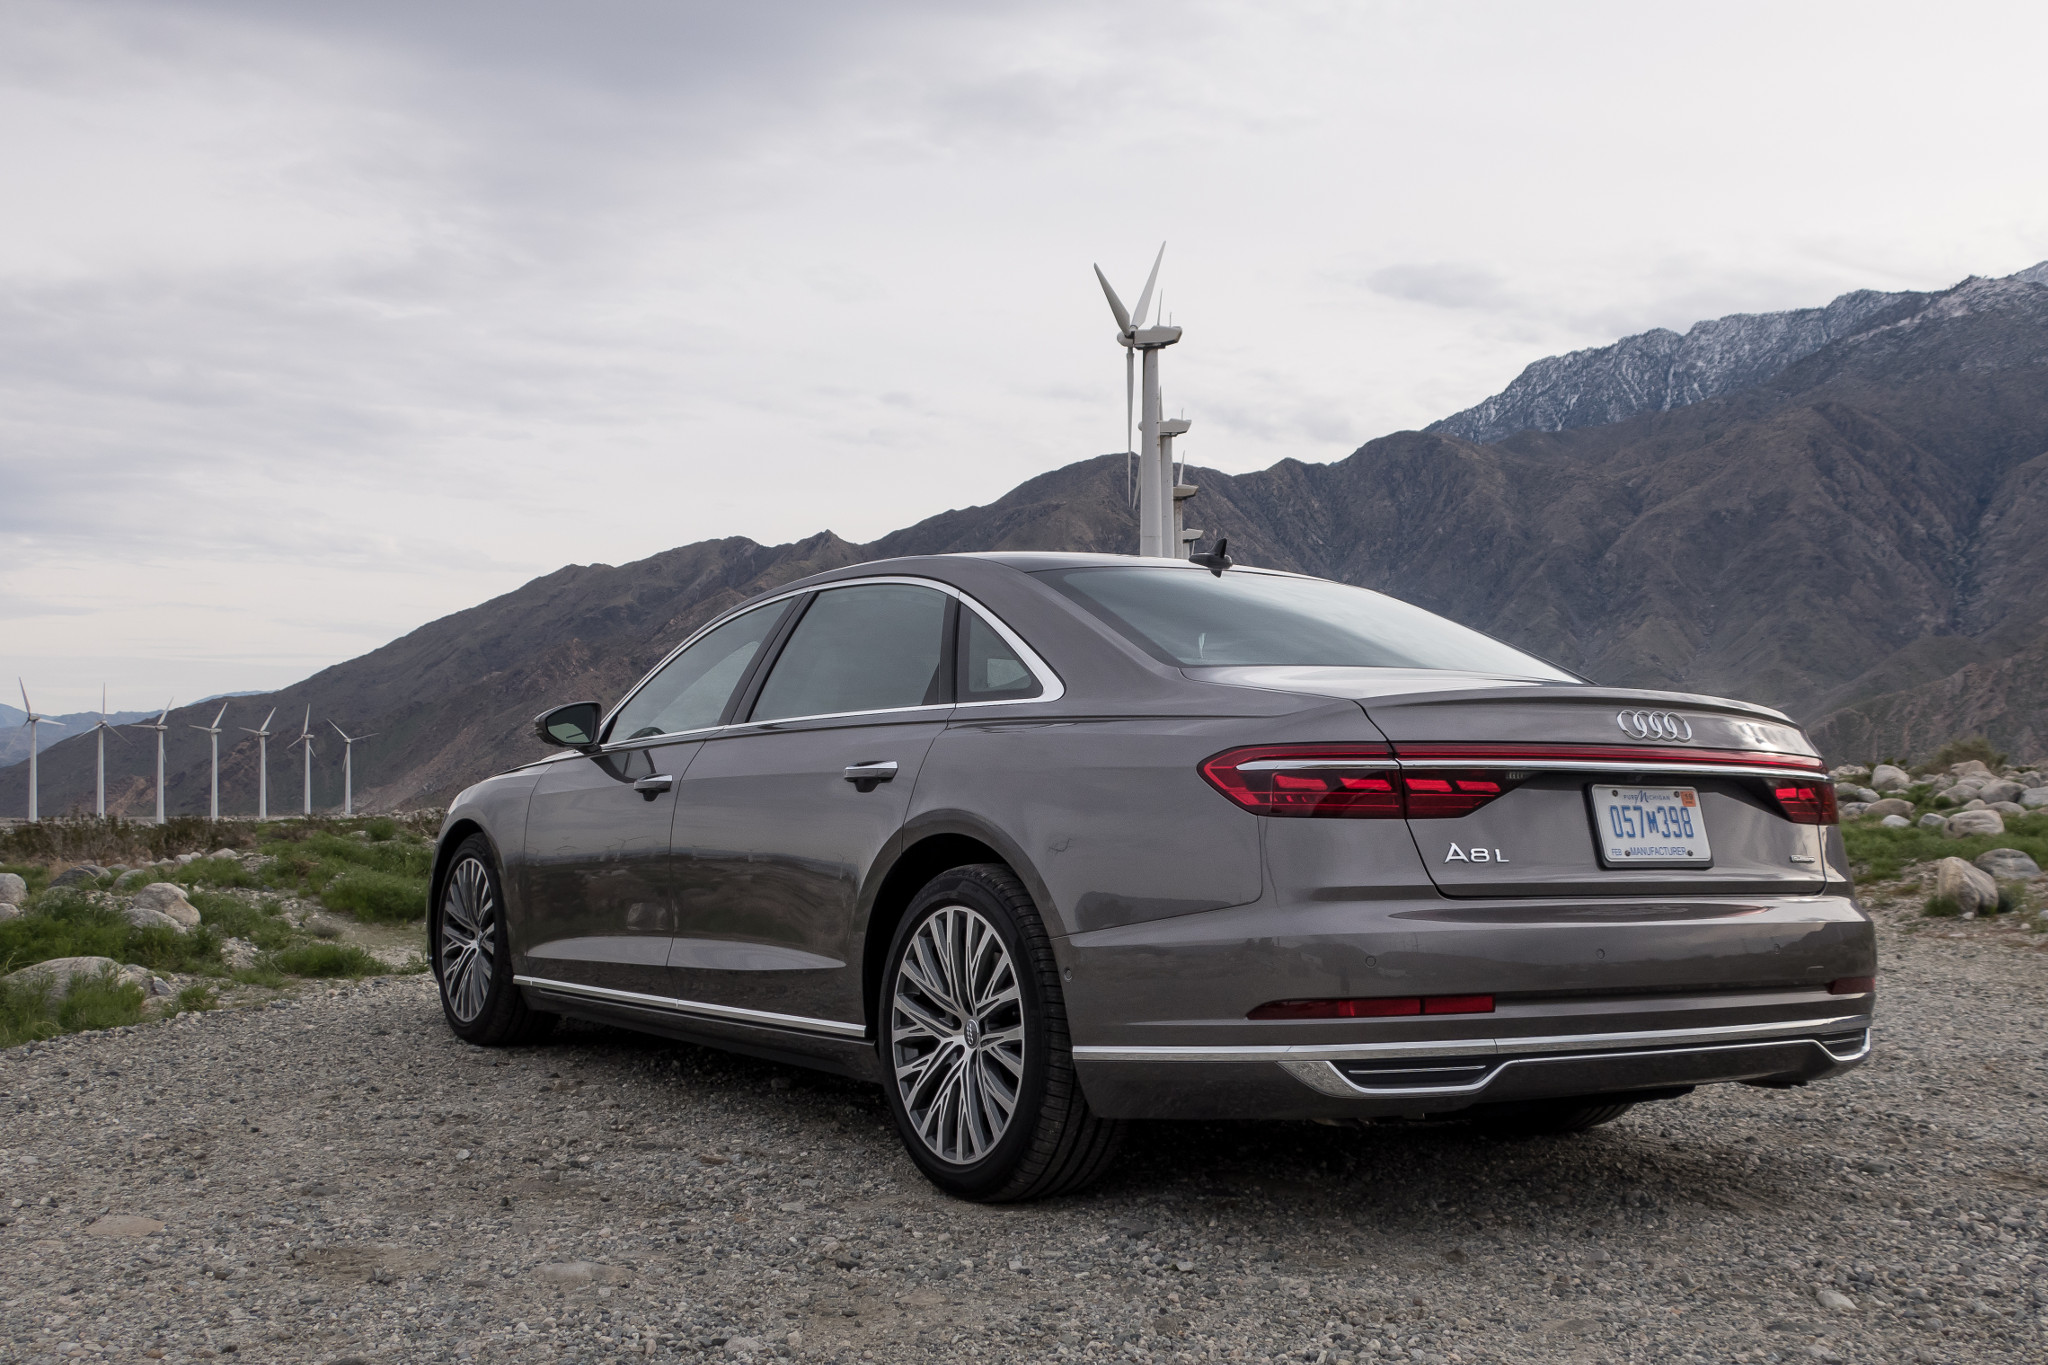 2019 Audi A8: 7 Things We Like (and 5 Not So Much)